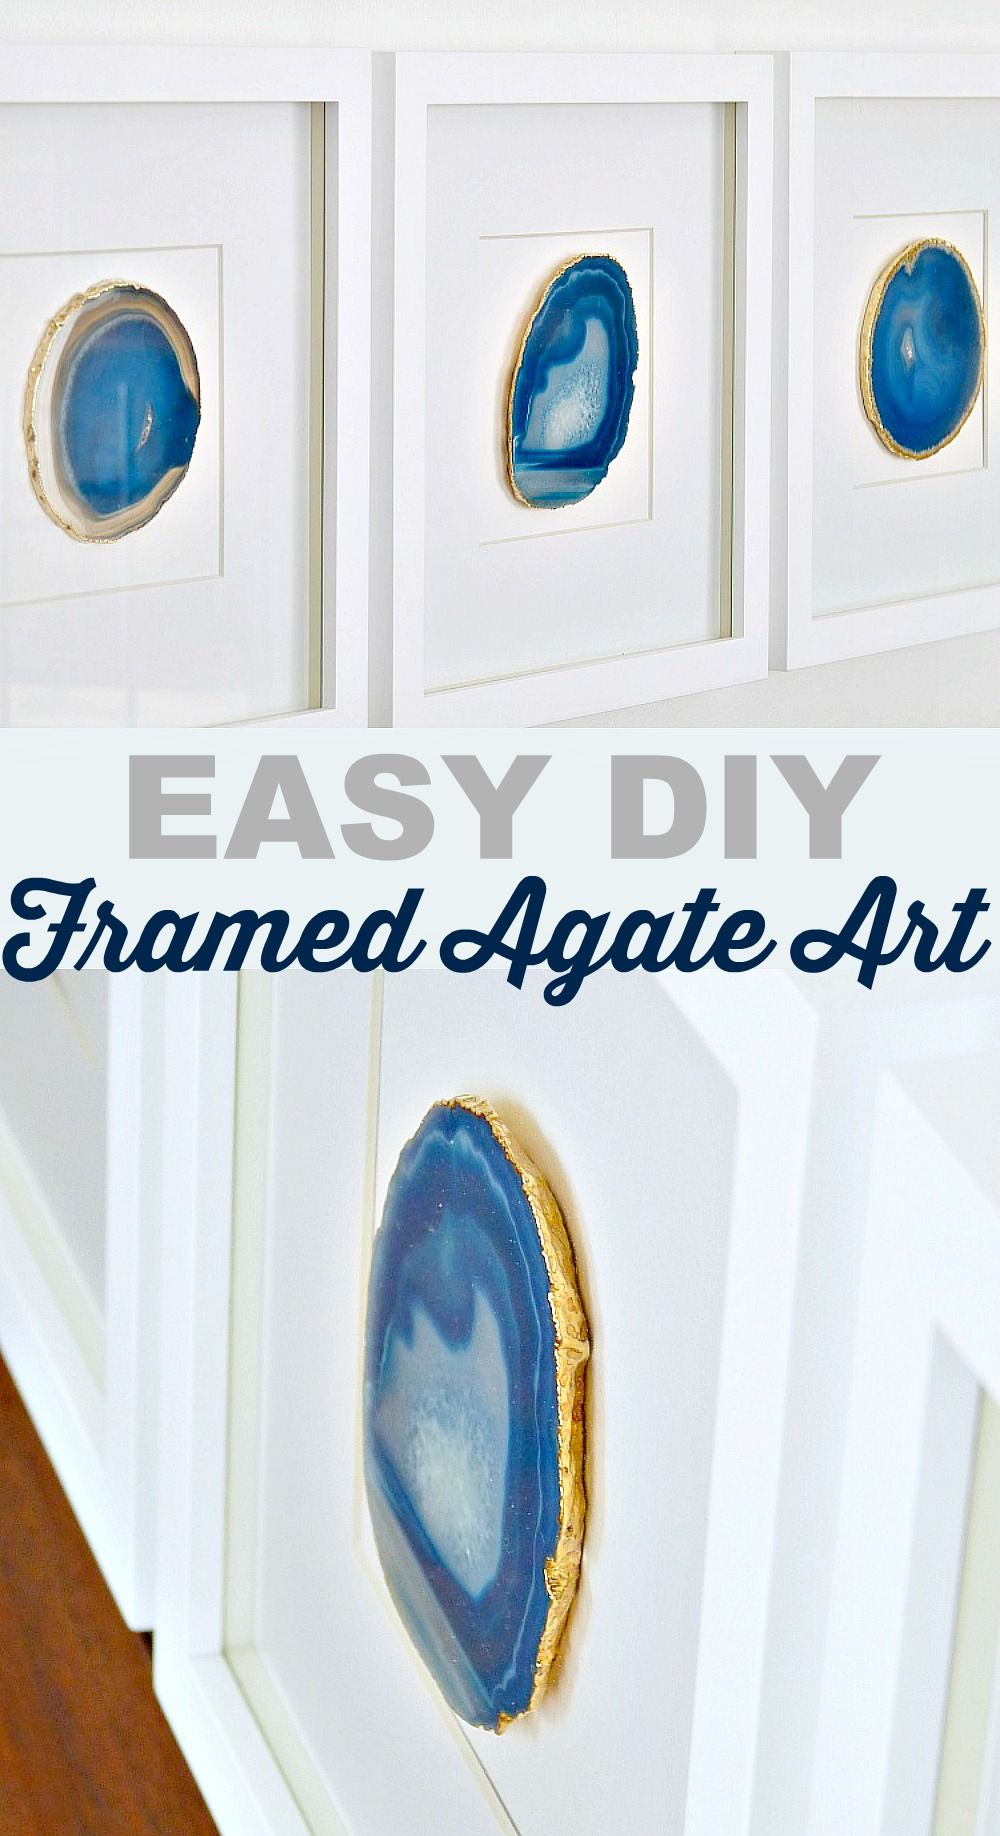 Diy Agate Art Framed Blue Agate Slices Diy Rahmen